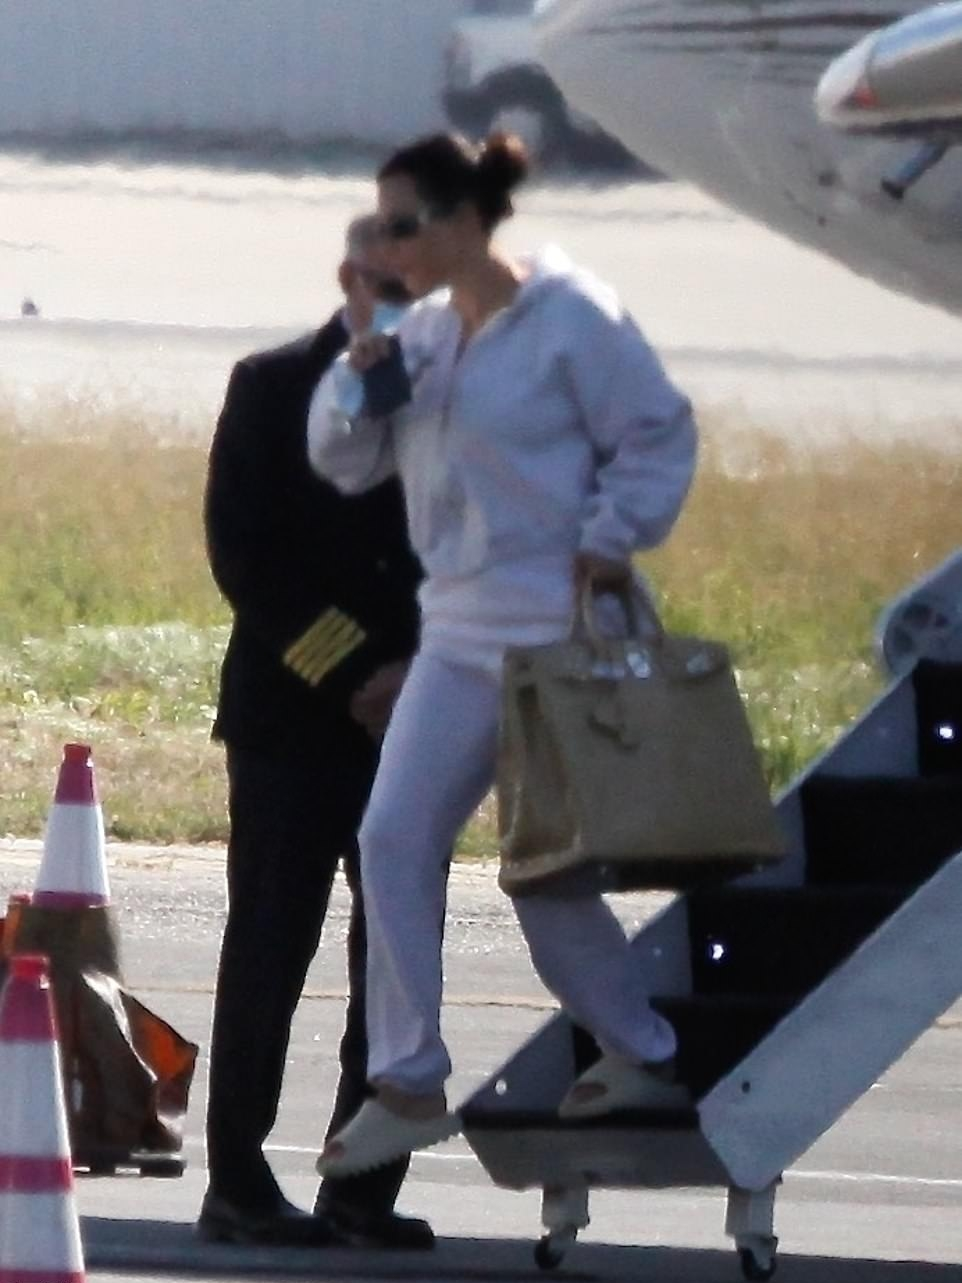 Kim Kardashian donning off white Adidas x Yeezy open toe sandals with chunky sole